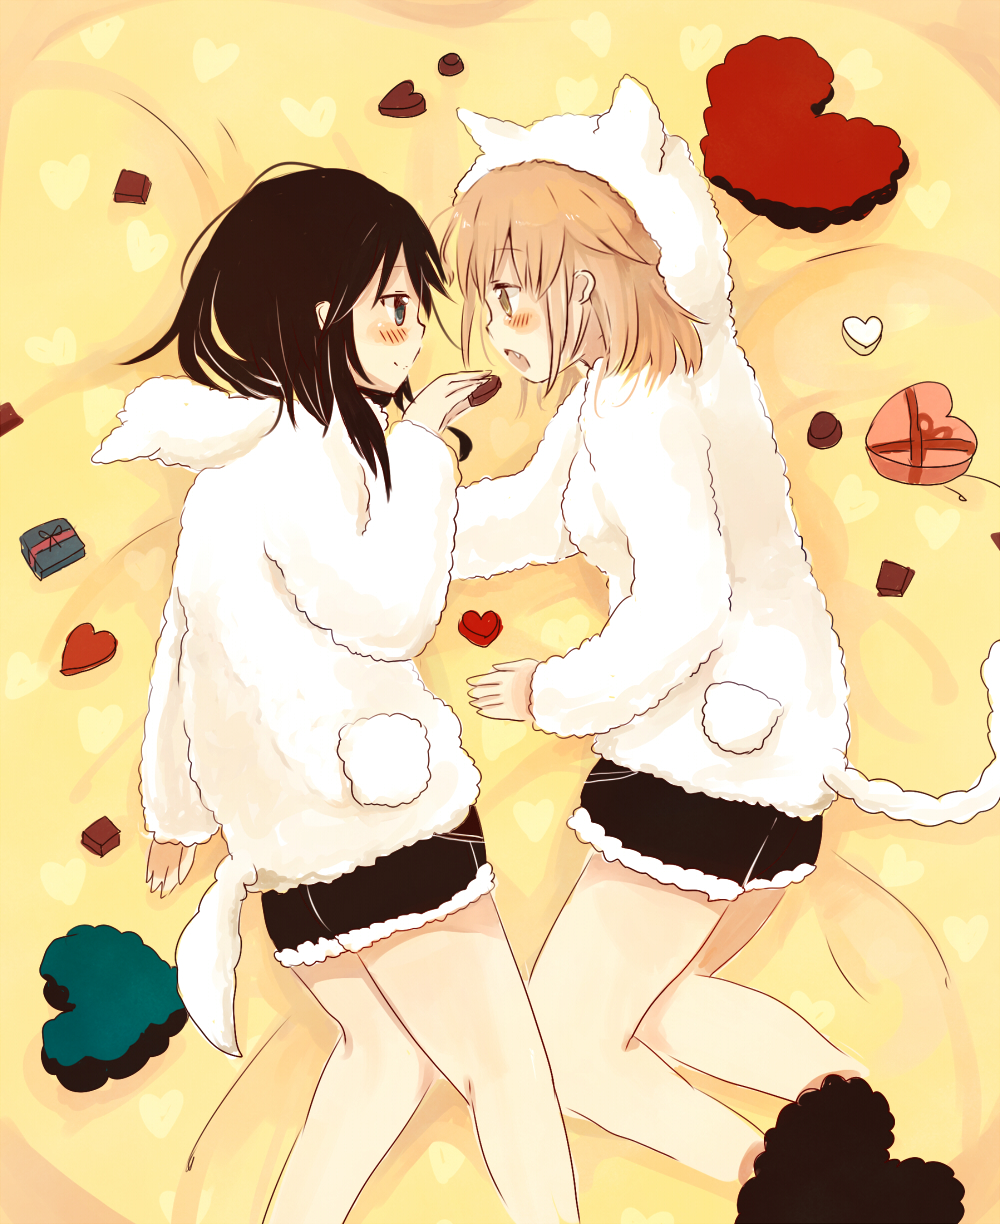 2girls animal_ears animal_hood bangs black_hair black_shorts blue_eyes blush box brown_eyes cat_ears cat_hood cat_tail chocolate chocolate_heart closed_mouth dog_ears dog_hood dog_tail eye_contact eyebrows_visible_through_hair fang feet foomi gift gift_box hair_between_eyes heart heart-shaped_box heart_print highres holding hood hood_down hood_up hoodie light_brown_hair long_sleeves looking_at_another loungewear lying multiple_girls on_side open_mouth original profile short_shorts shorts sleeves_past_wrists smile tail white_hoodie yuri